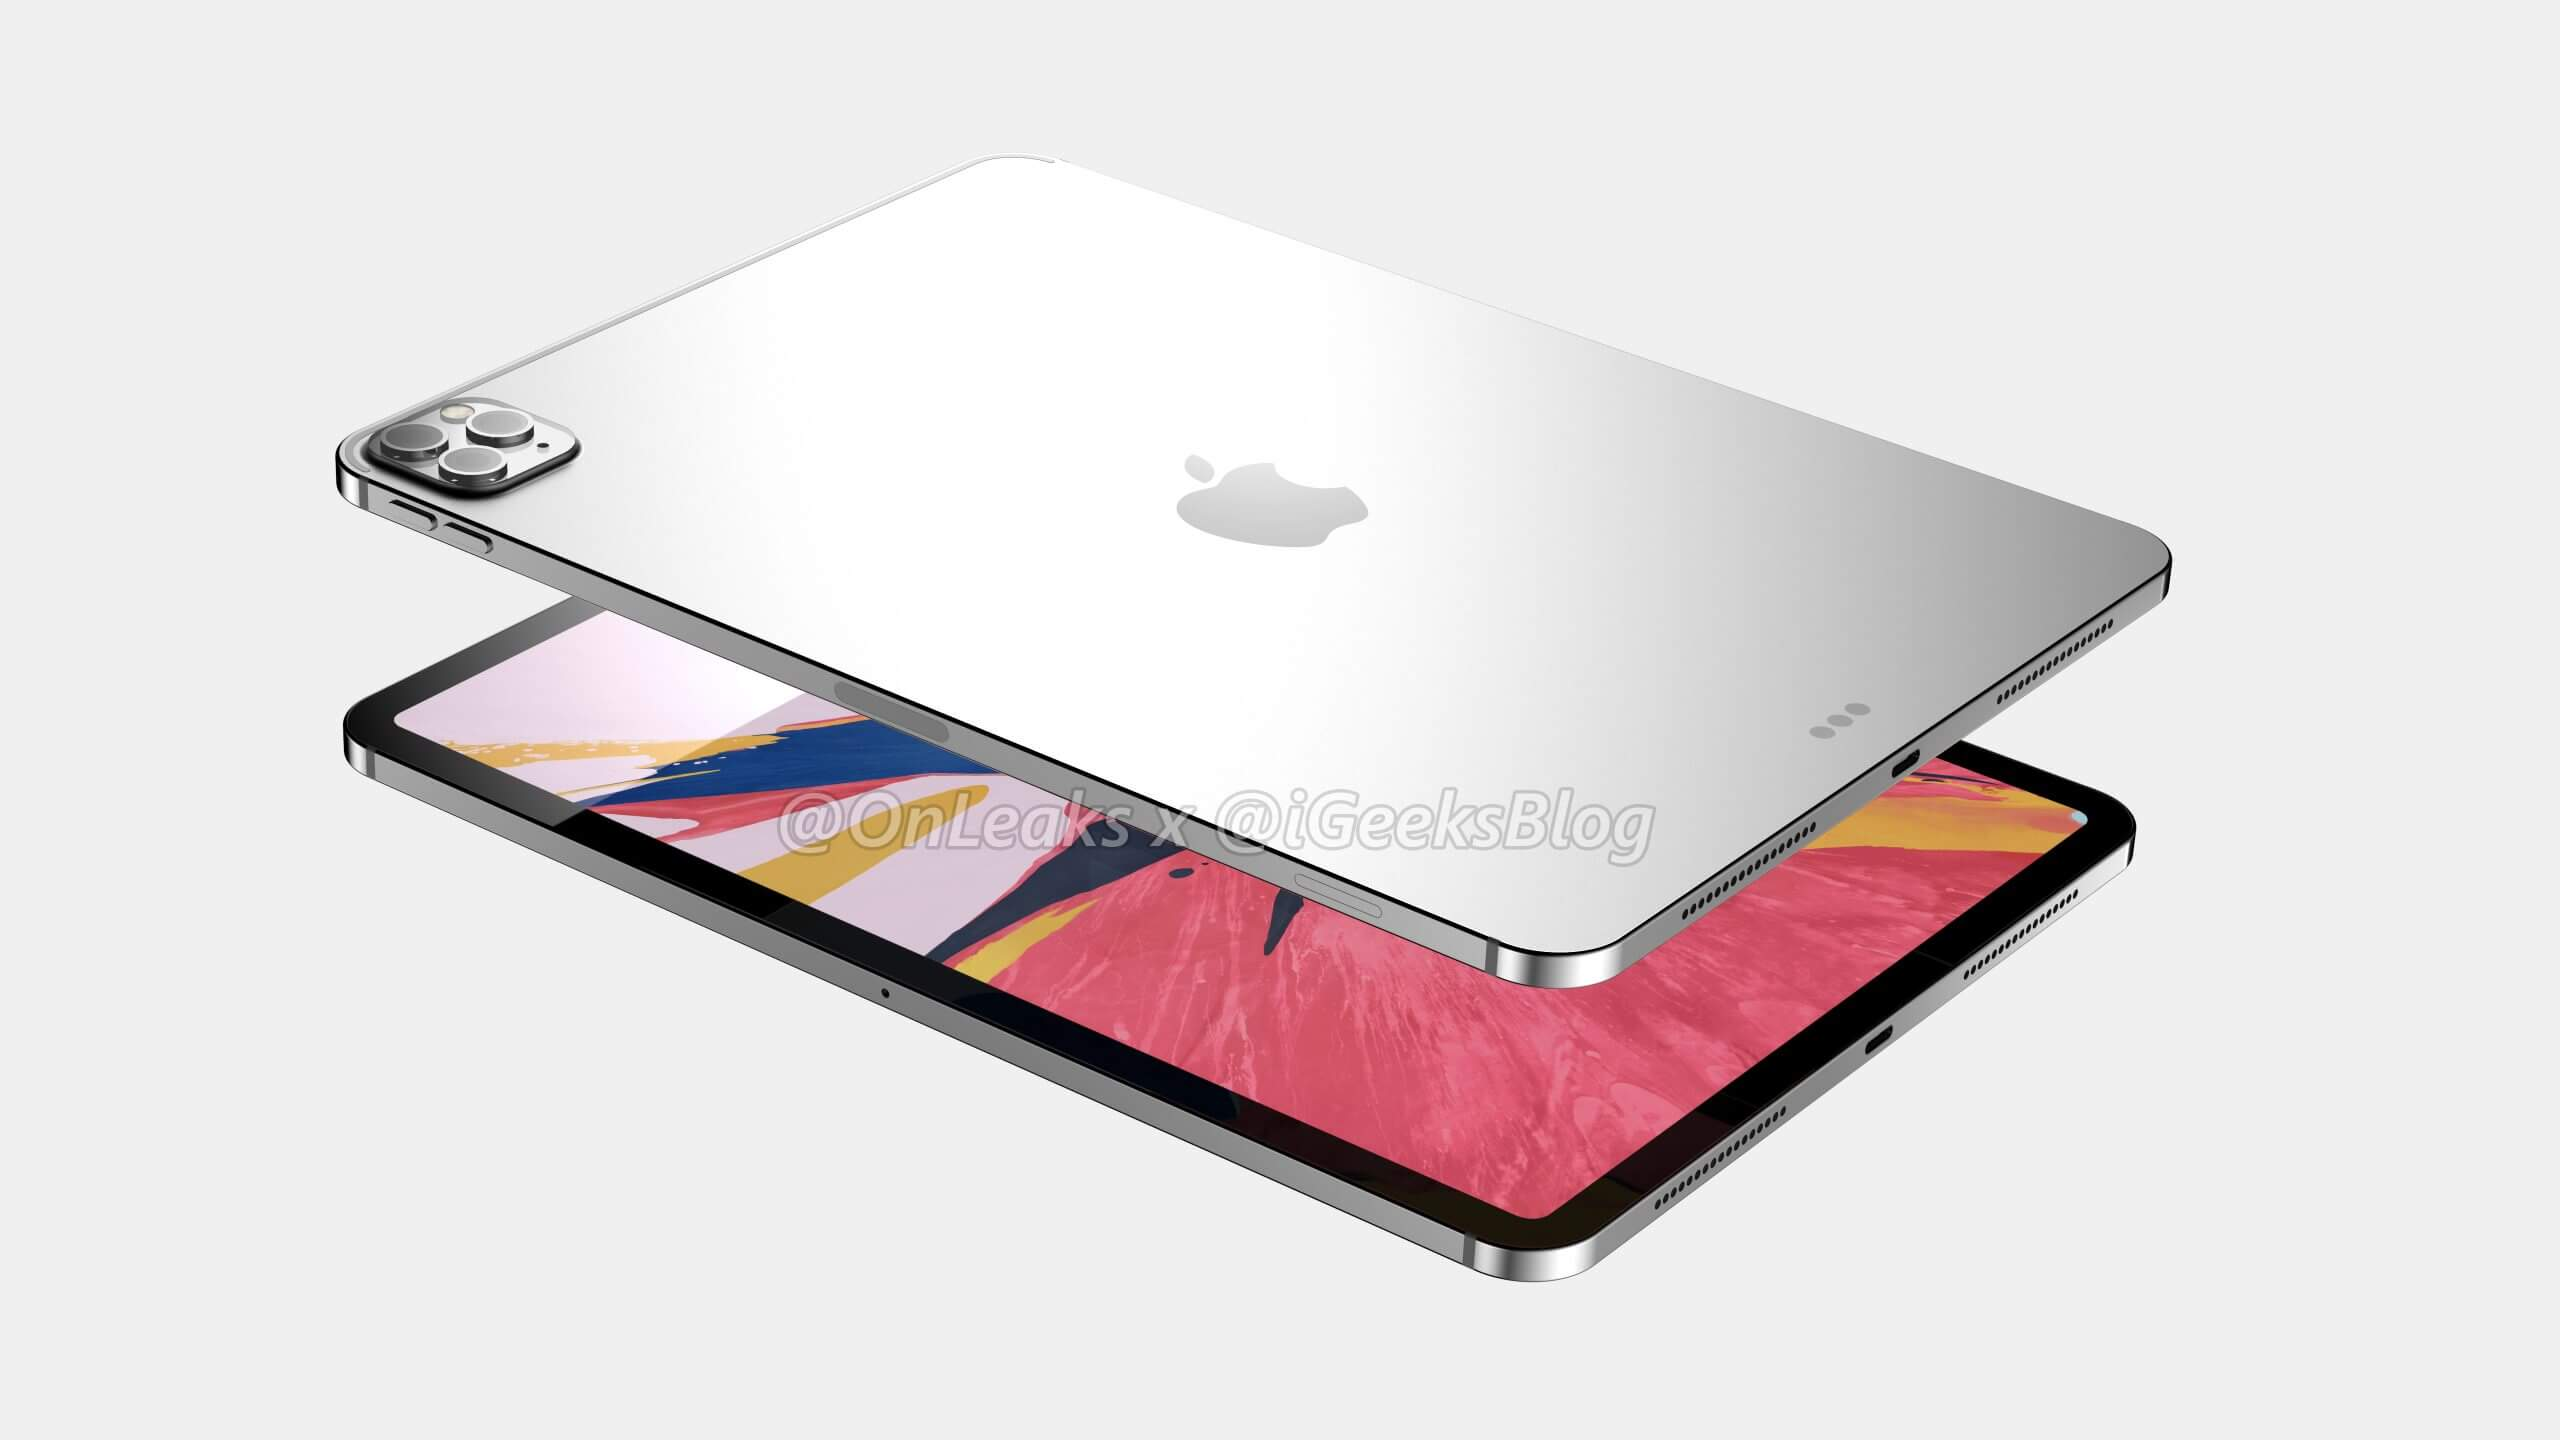 2020 11-inch iPad Pro with Metal Back